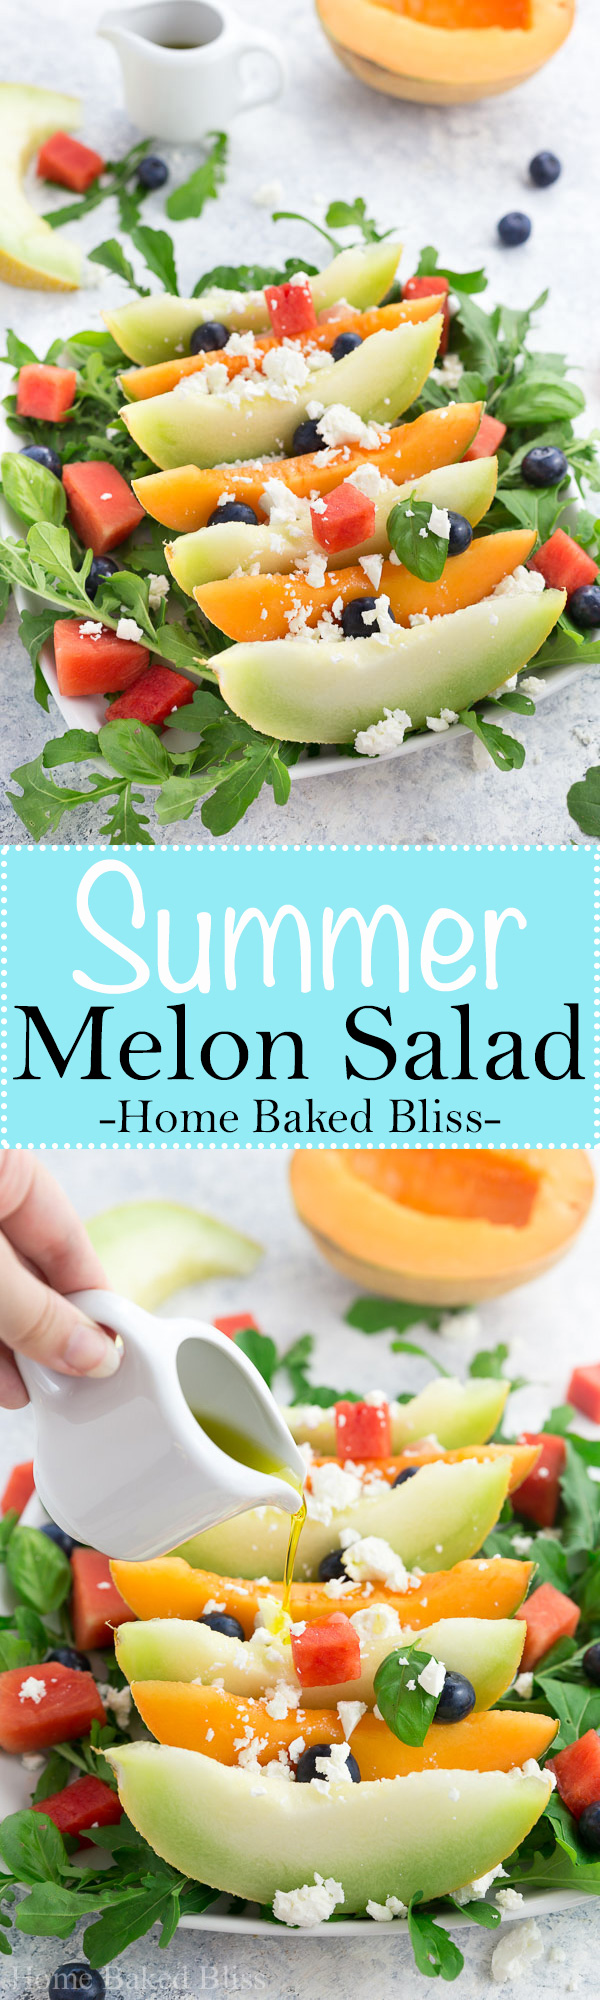 A light and refreshing summer melon salad composed of cantaloupe, honeydew and watermelon. Topped off with feta cheese and olive oil this salad makes a wonderful salty and sweet side dish for bbqs, parties and get-togethers. #summerrecipe #melonsalad #summersalad #melon | homebakedbliss.com